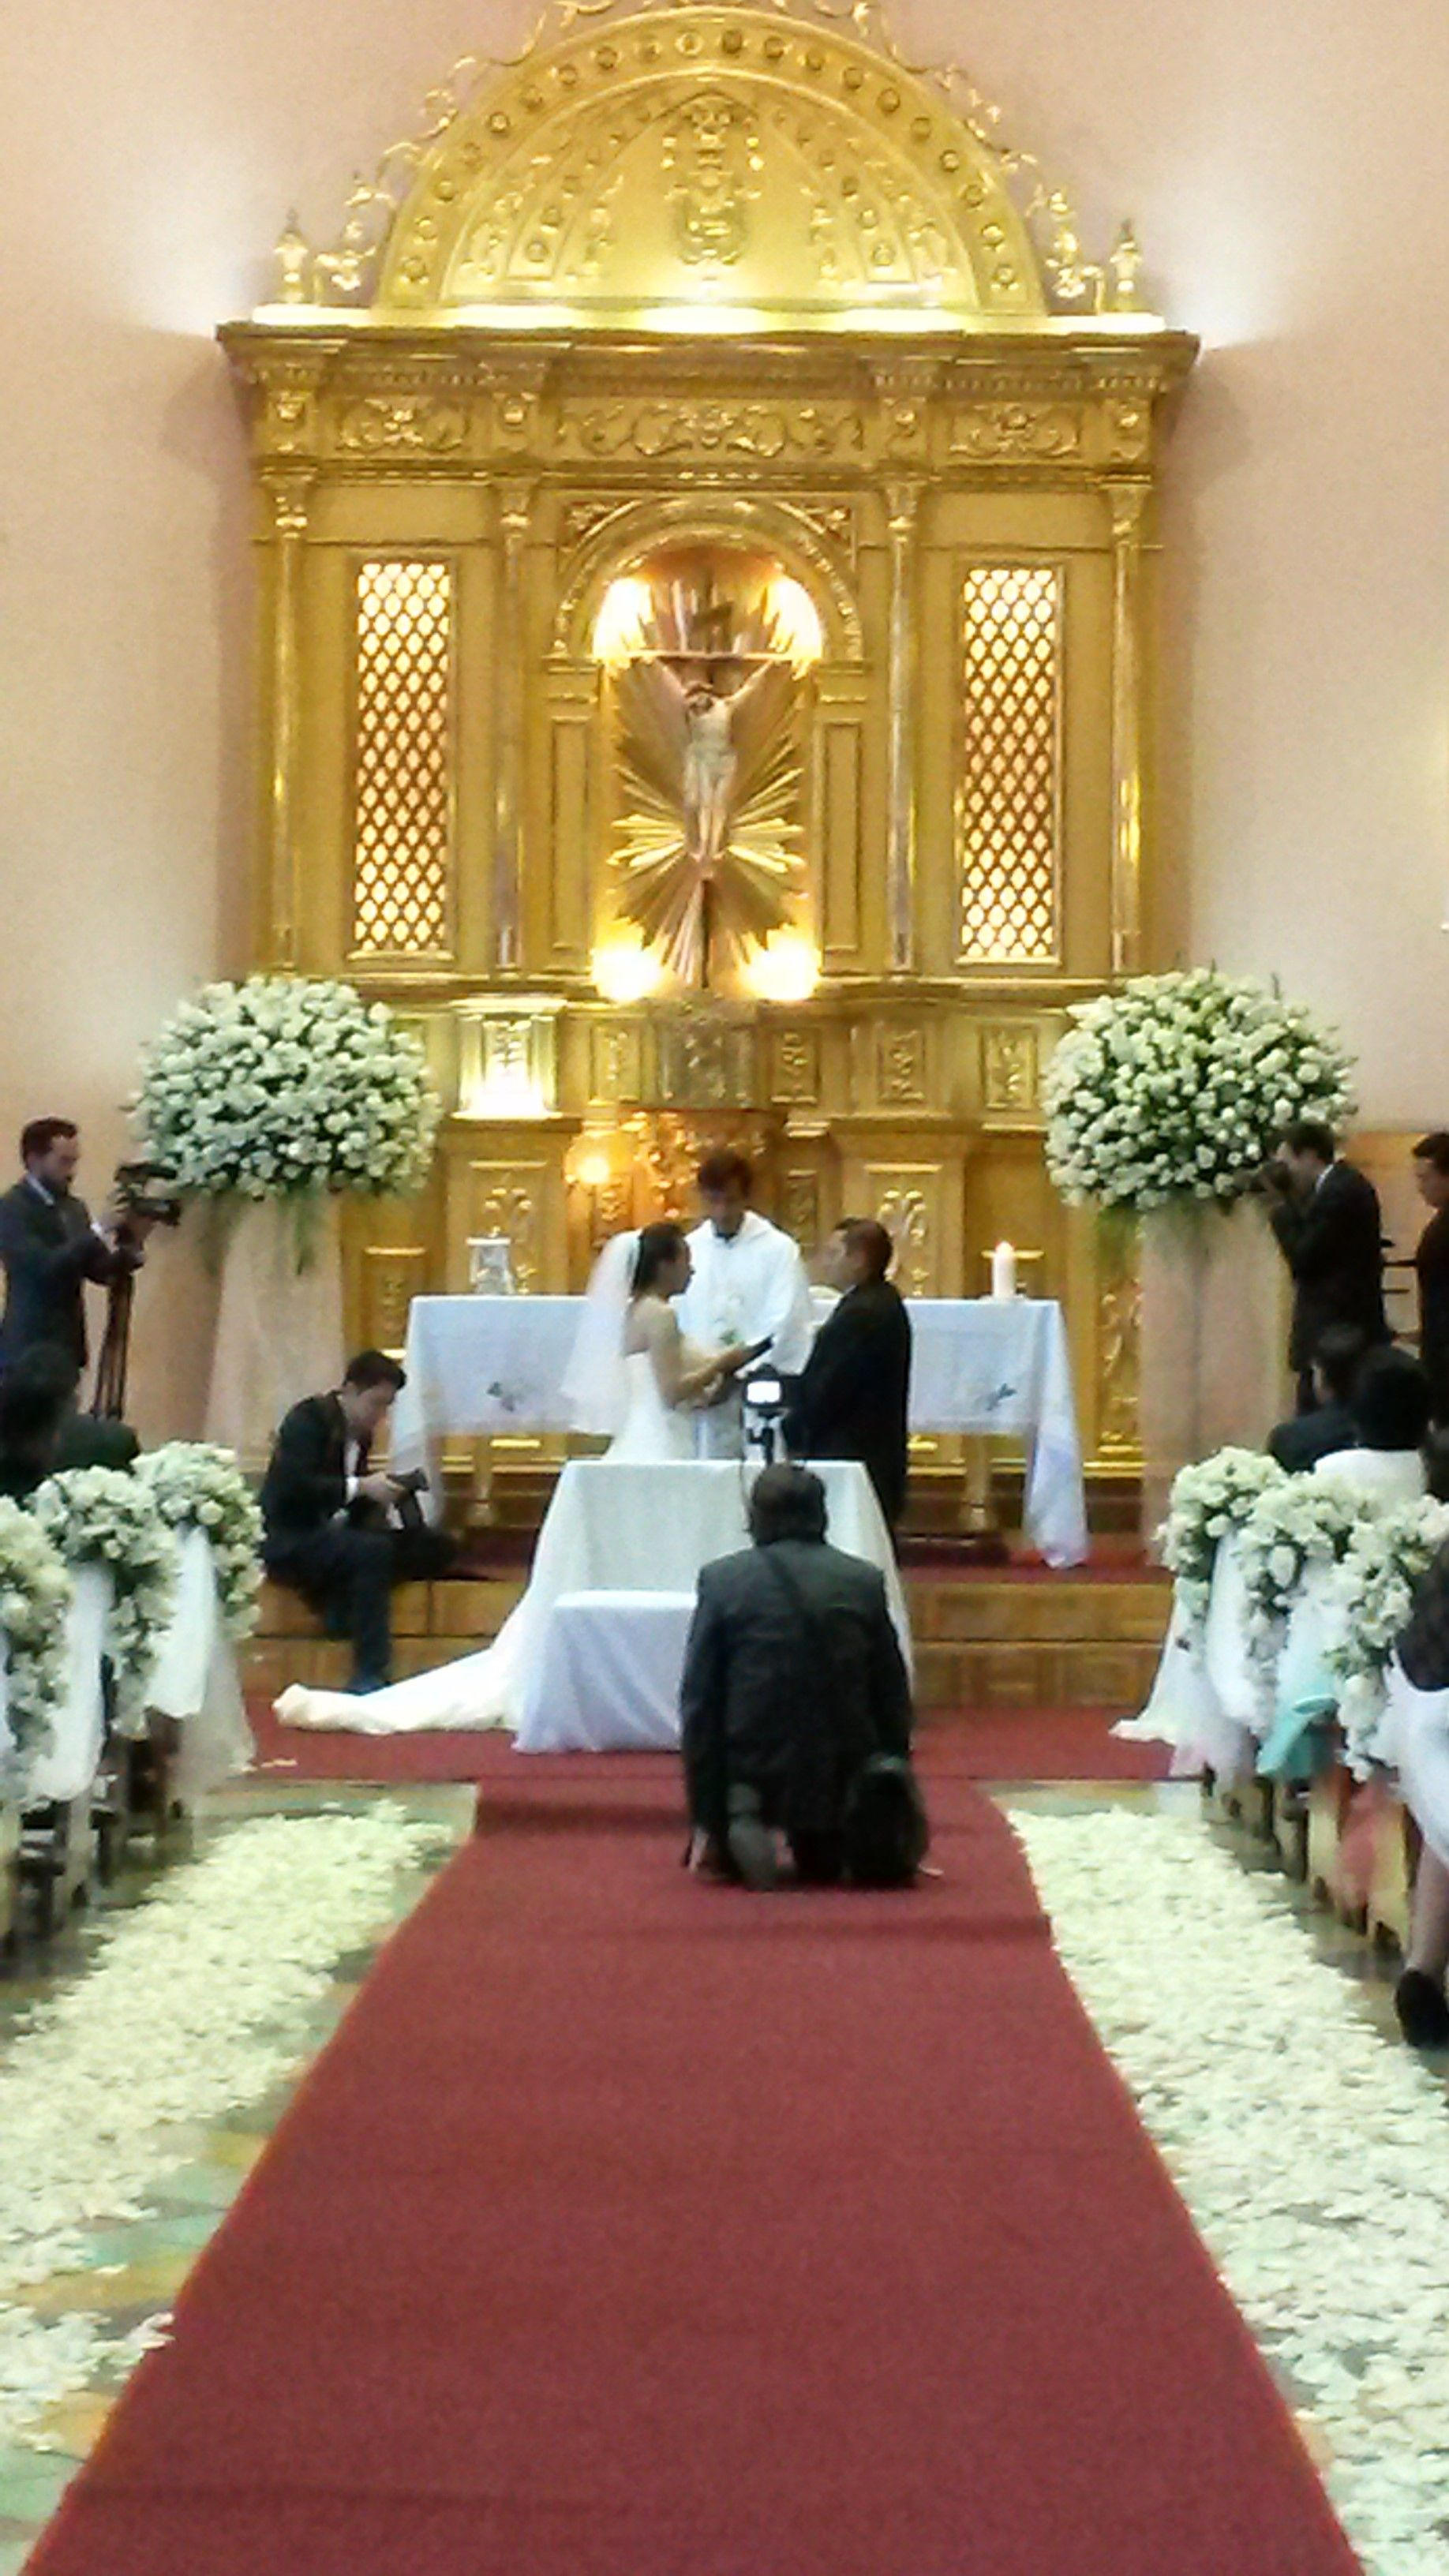 Take A Look To The Shrine Capilla De Nuestra Señora De Lourdes Quito Ecuador Destinationweddingsecuador Getmarriedinecuador Table Decorations Design Decor